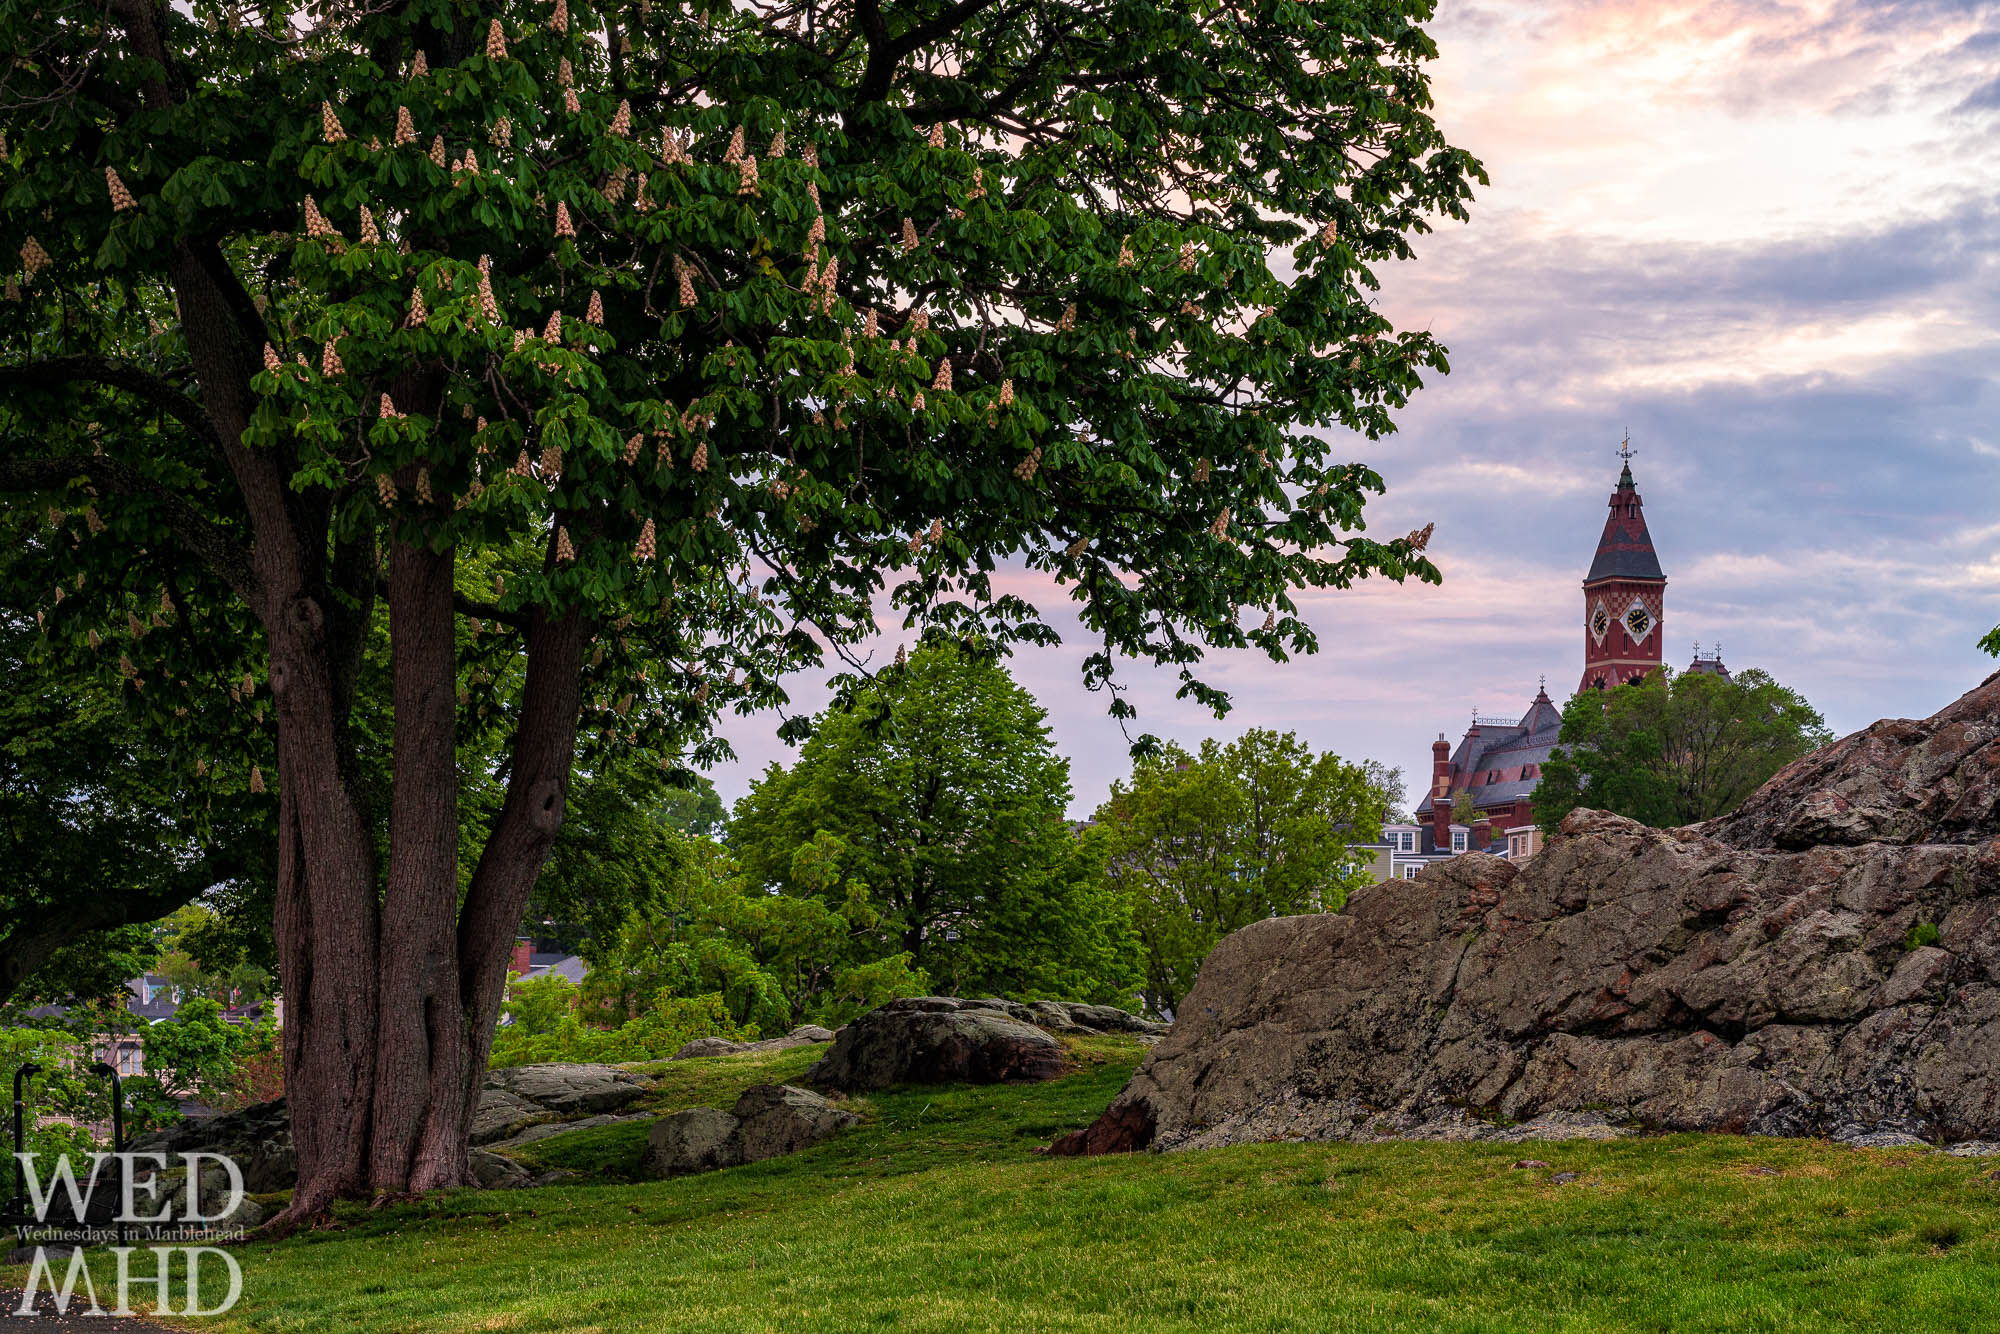 A chestnut tree in bloom at Crocker Park serves as a nice counter to Abbot Hall on a late May evening in Marblehead